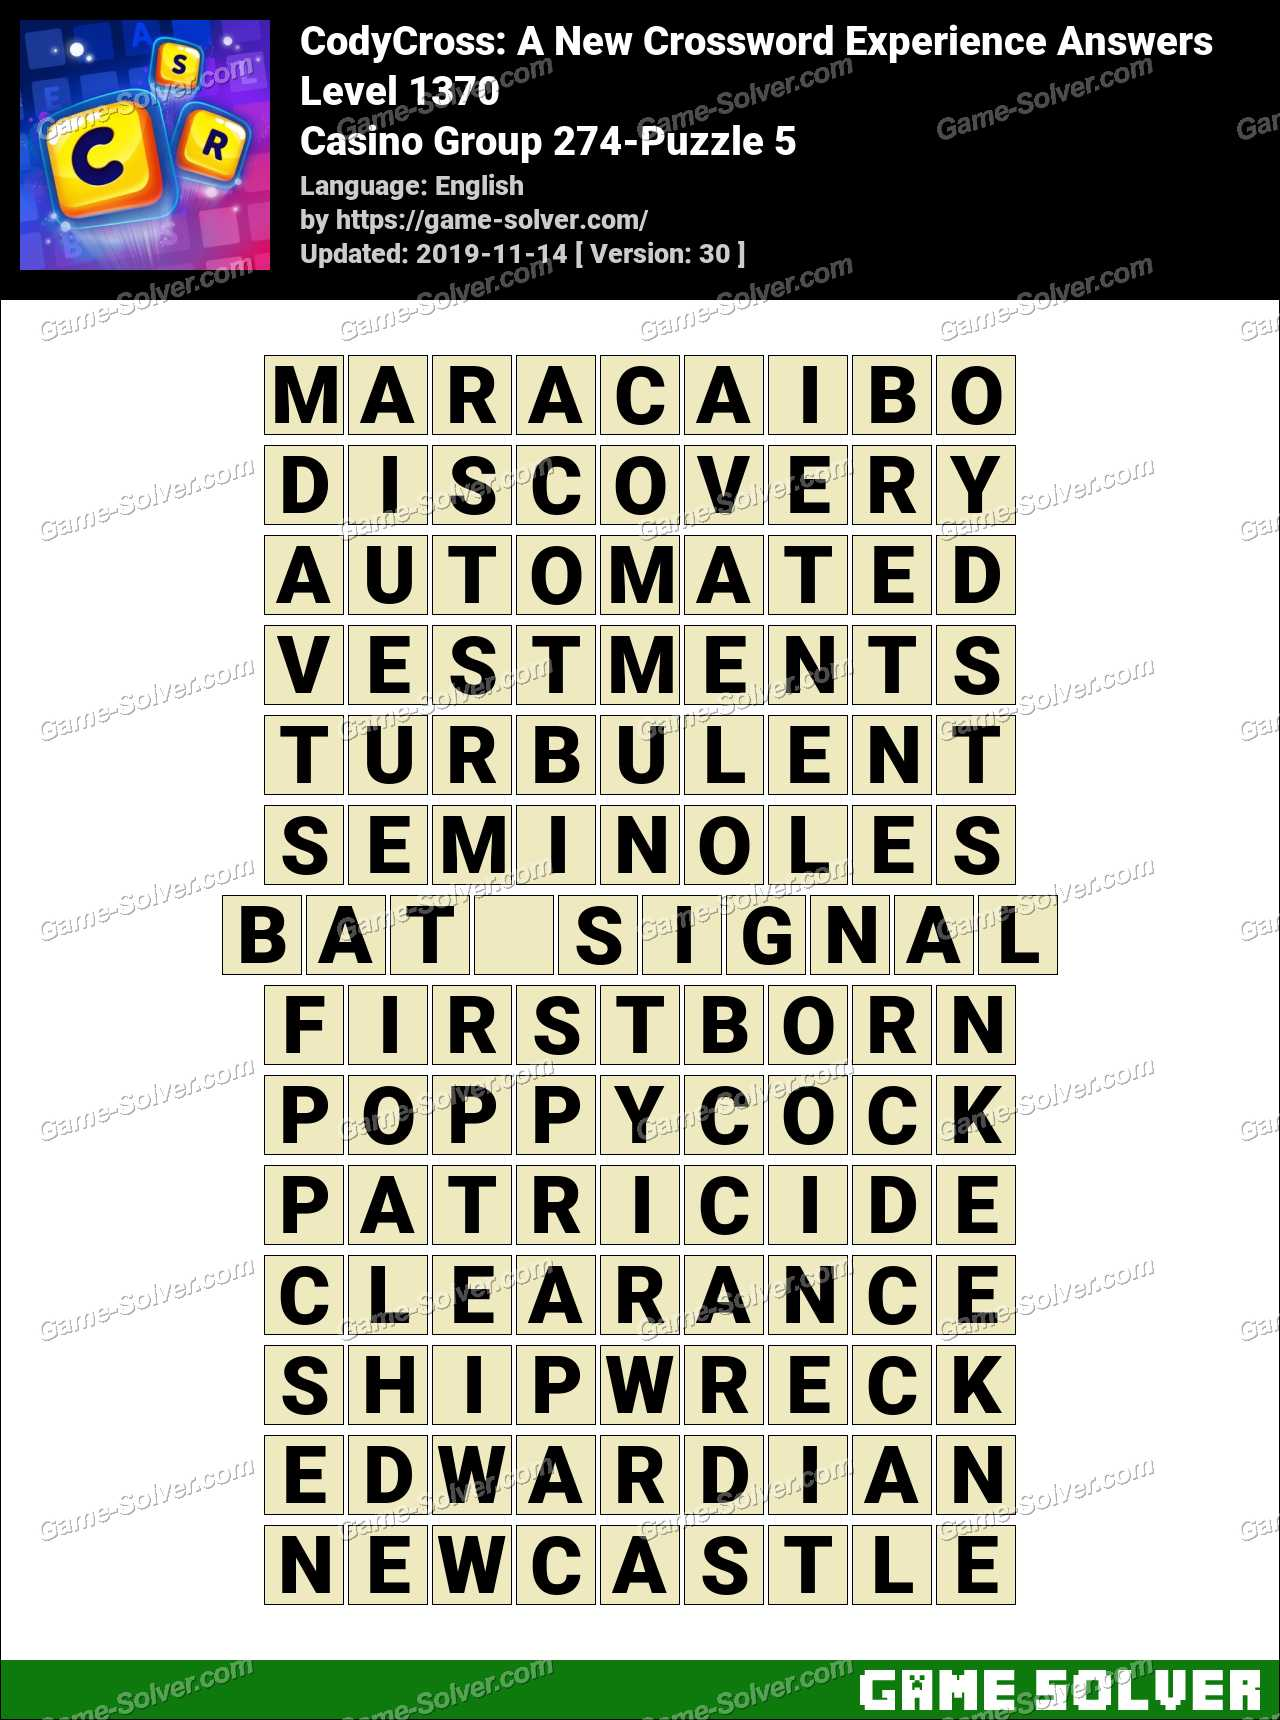 CodyCross Casino Group 274-Puzzle 5 Answers